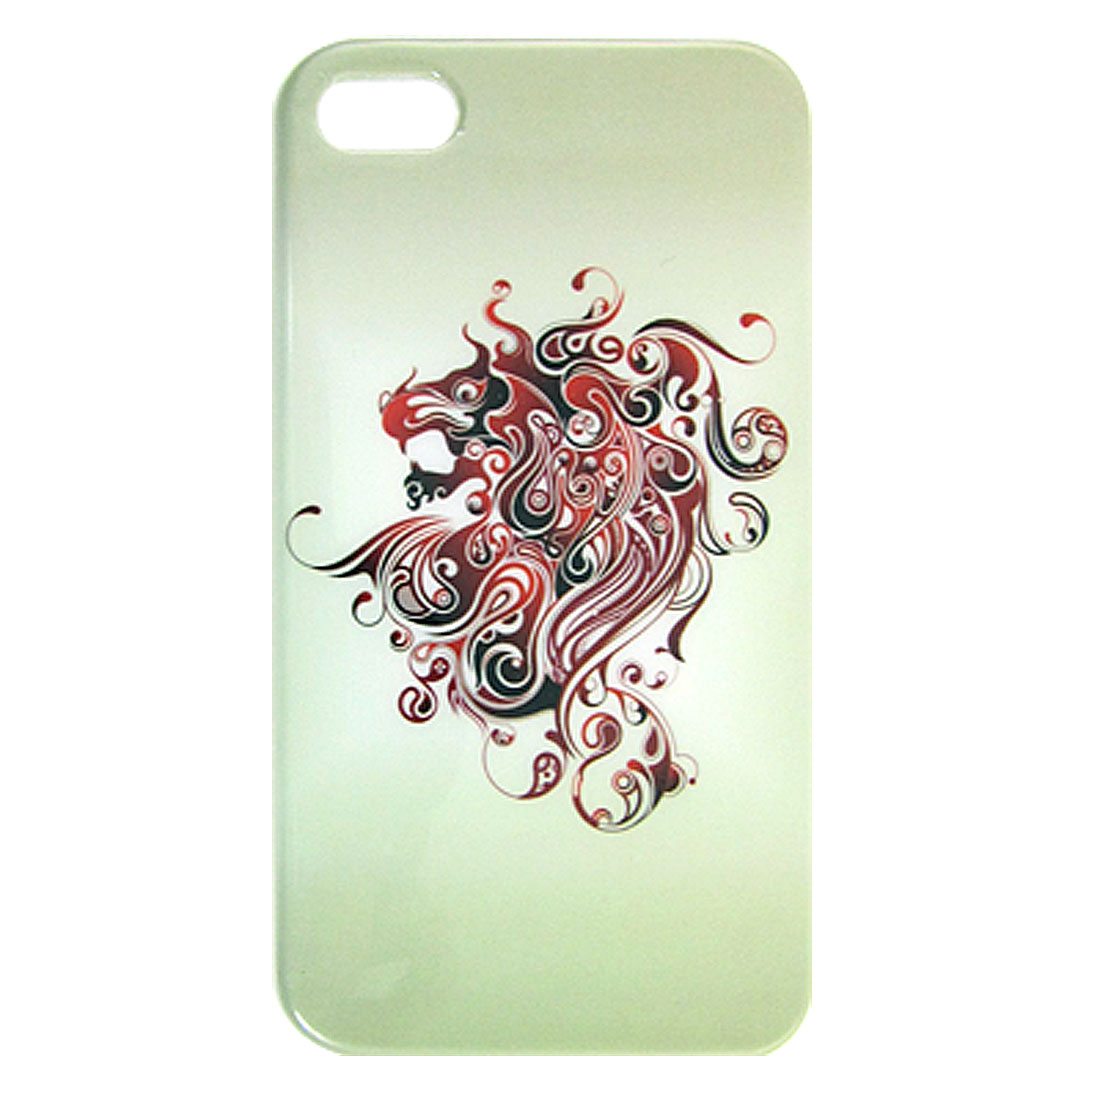 Black Red Dragon Pattern IMD Back Case Cover Shell for iPhone 4 4G 4S